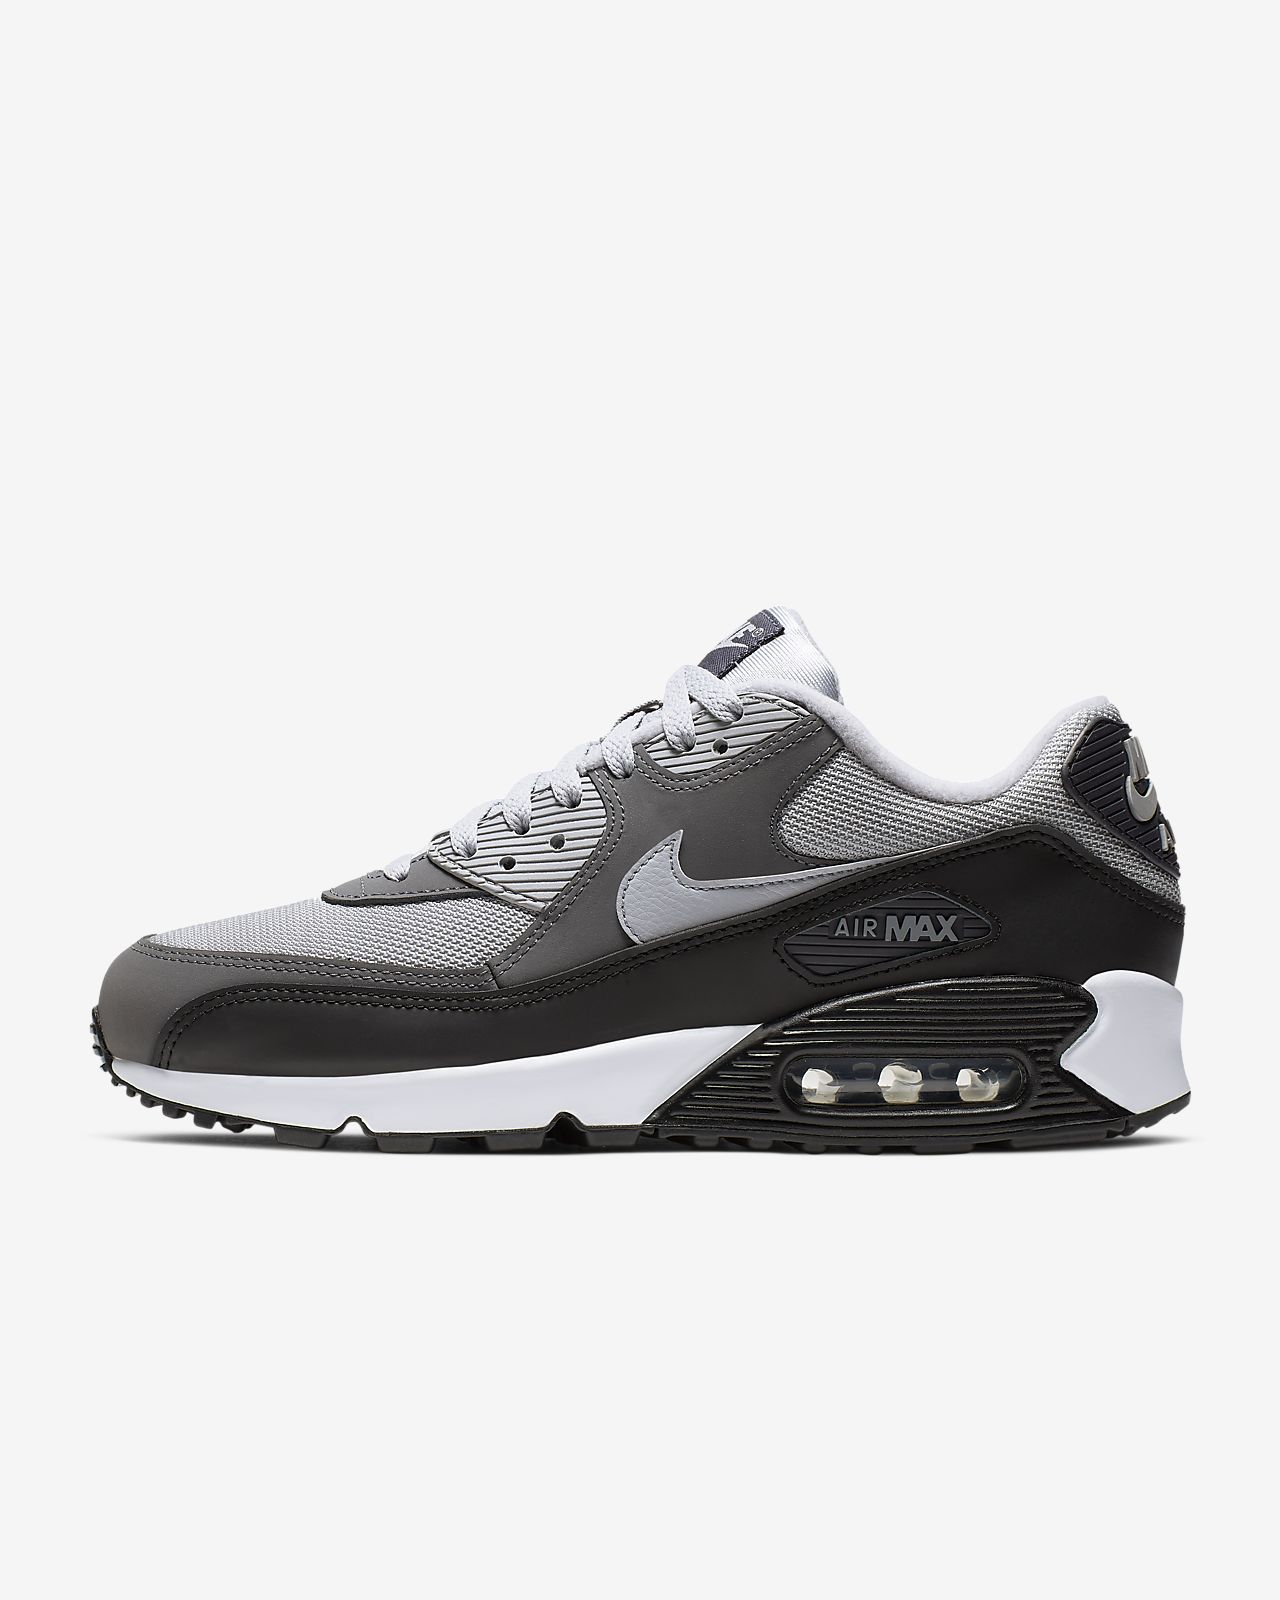 foto ufficiali 8a406 56521 Nike Air Max 90 Men's Shoe